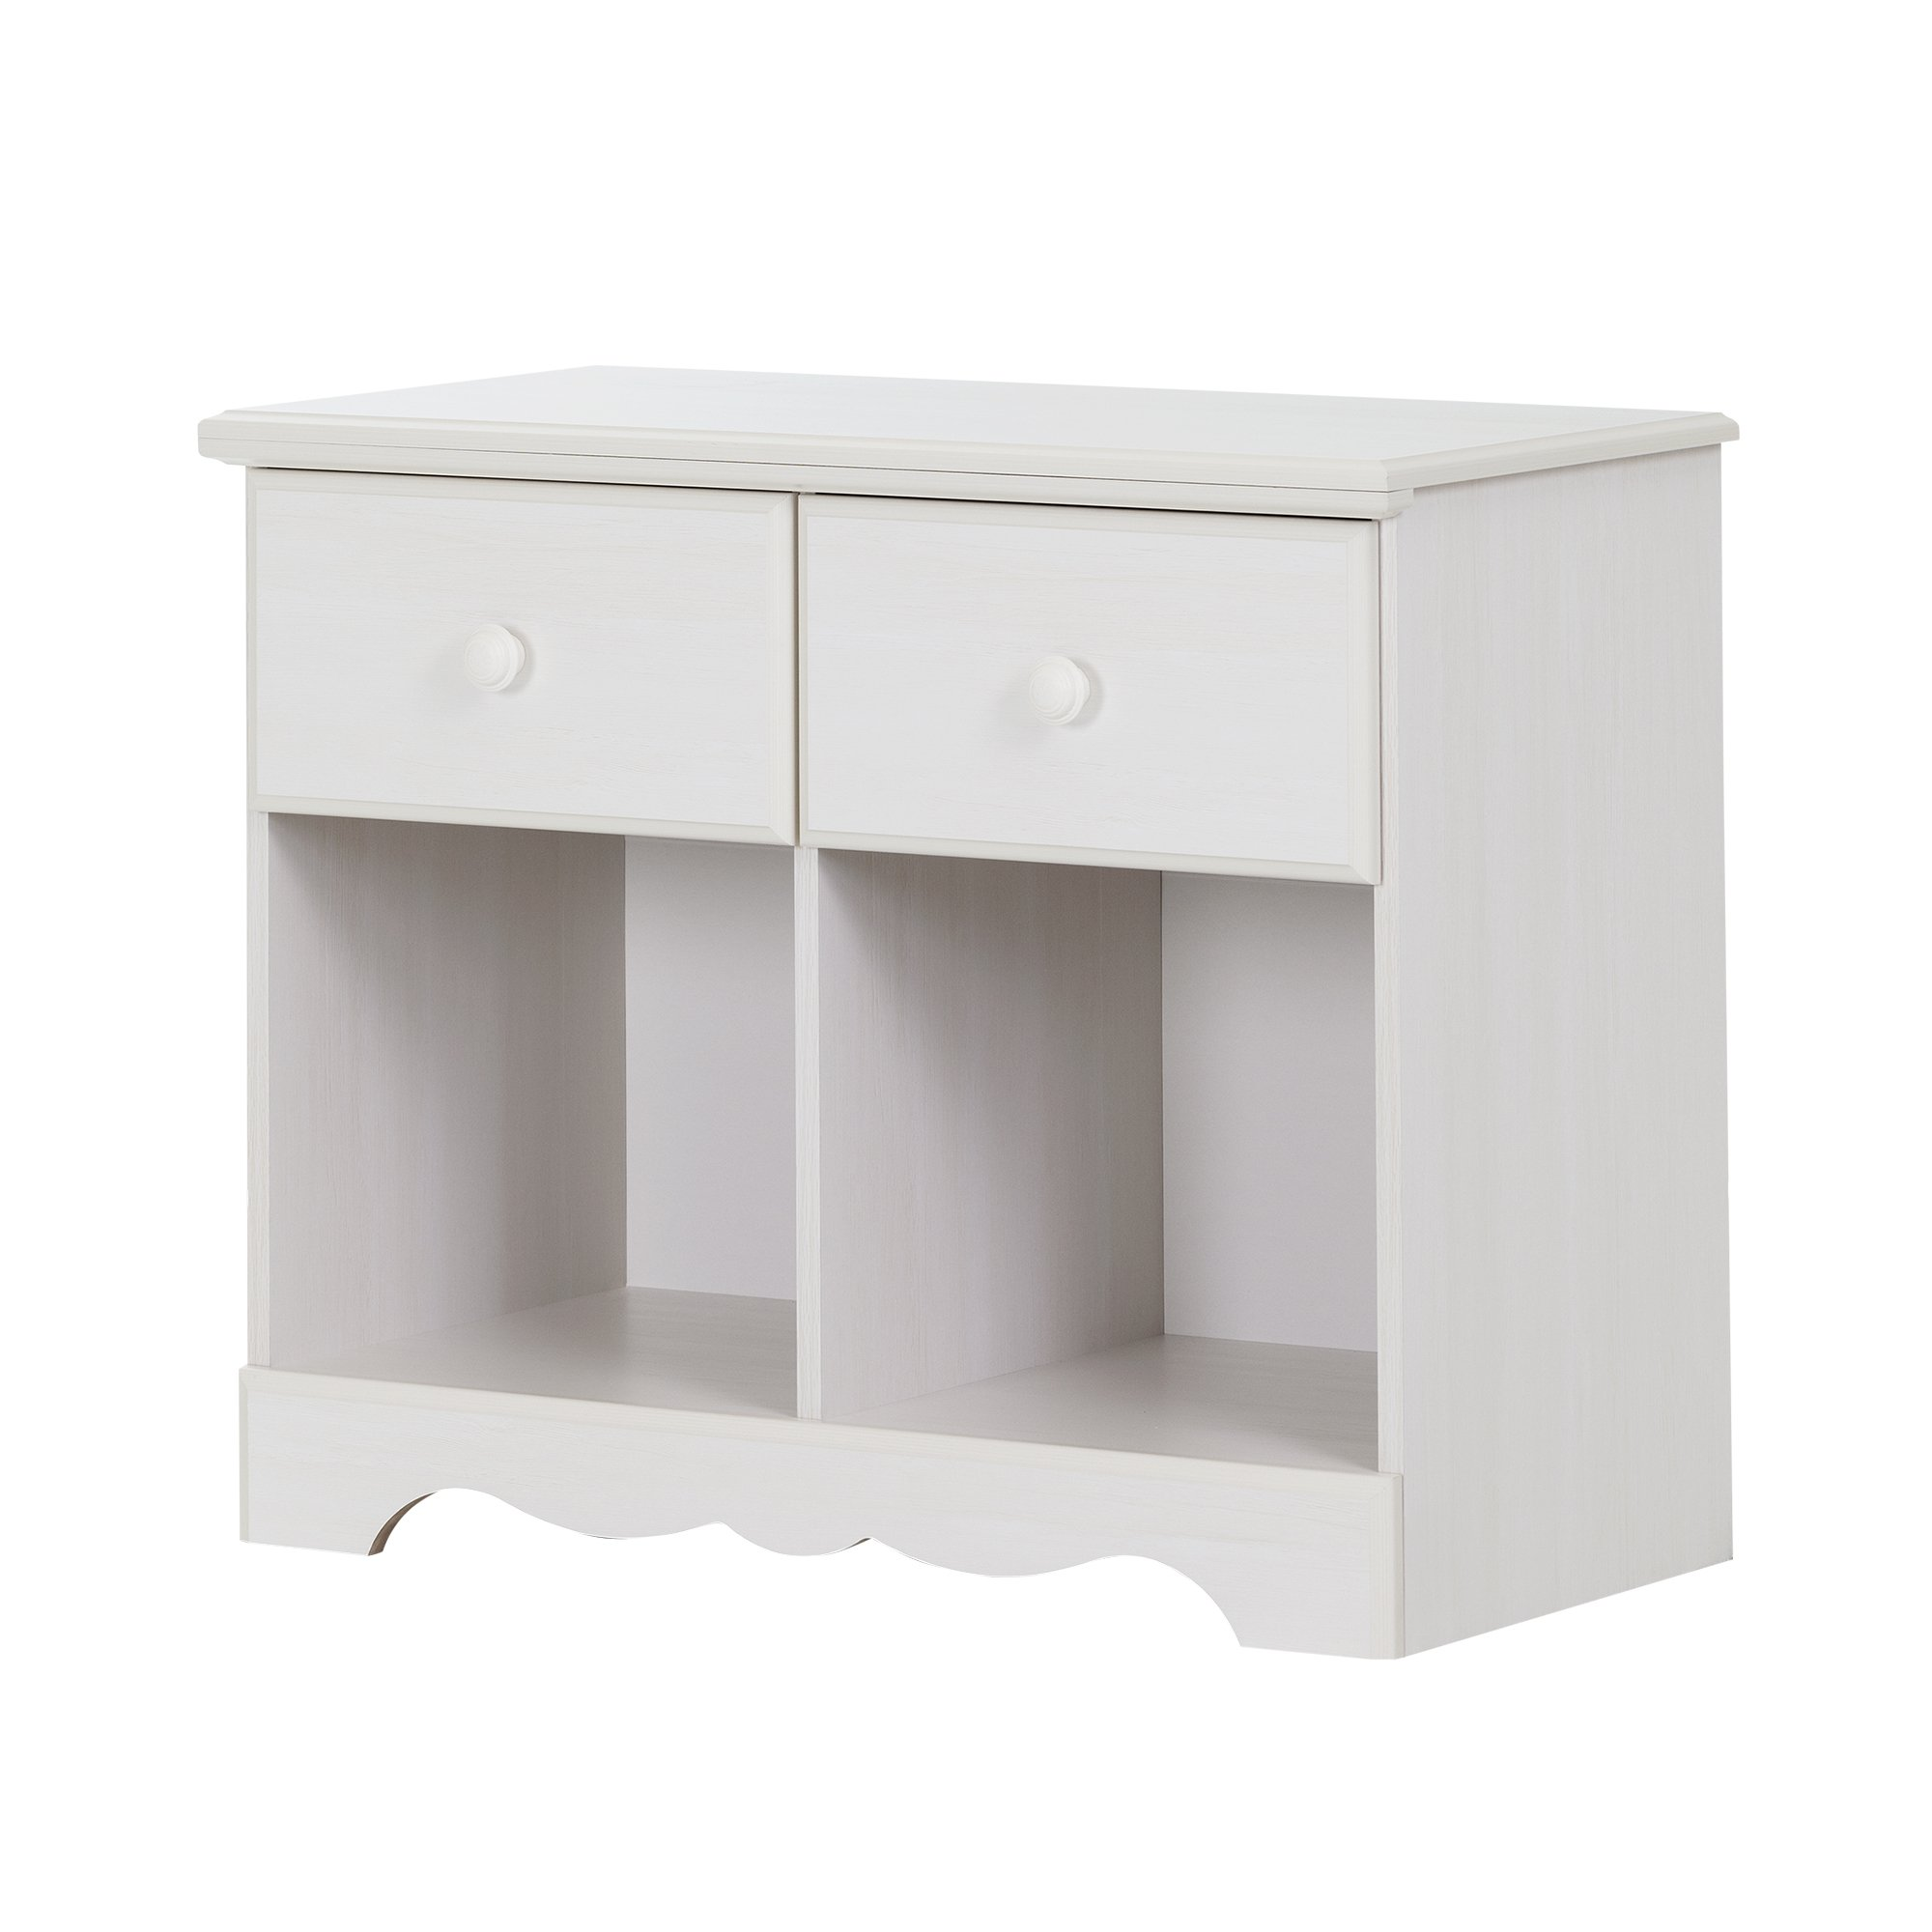 South Shore Summer Breeze 2-Drawer Double Nightstand, White Wash